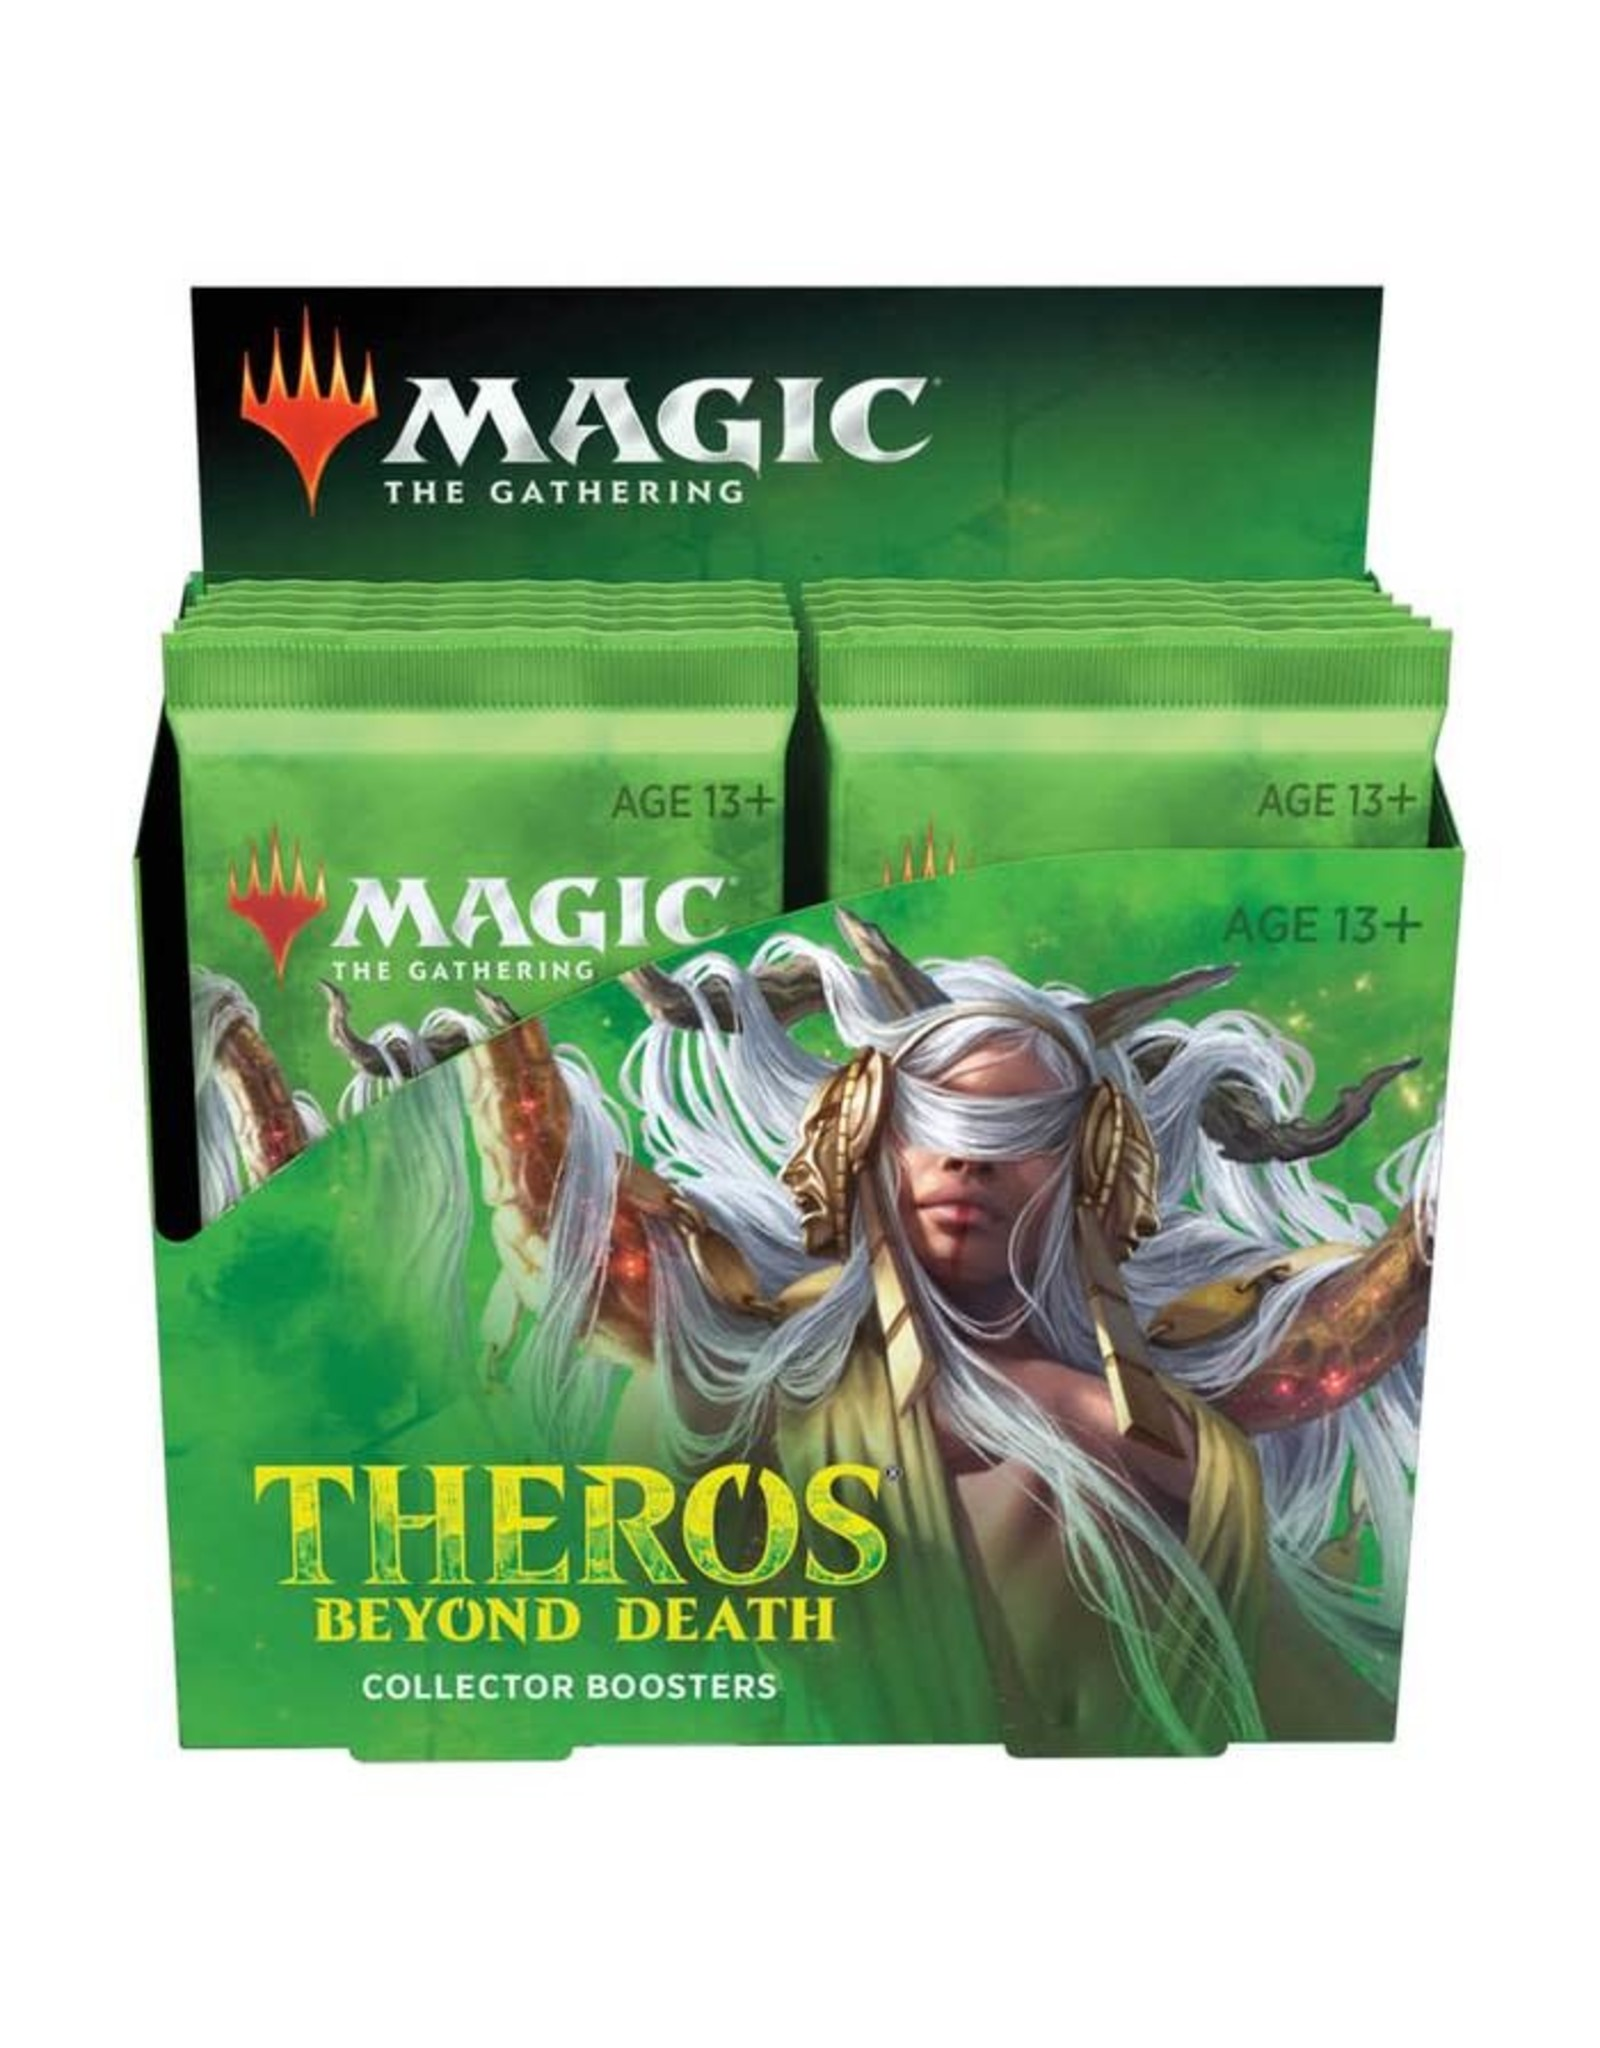 Magic: The Gathering Magic: The Gathering - Theros Beyond Death Collector Booster Box